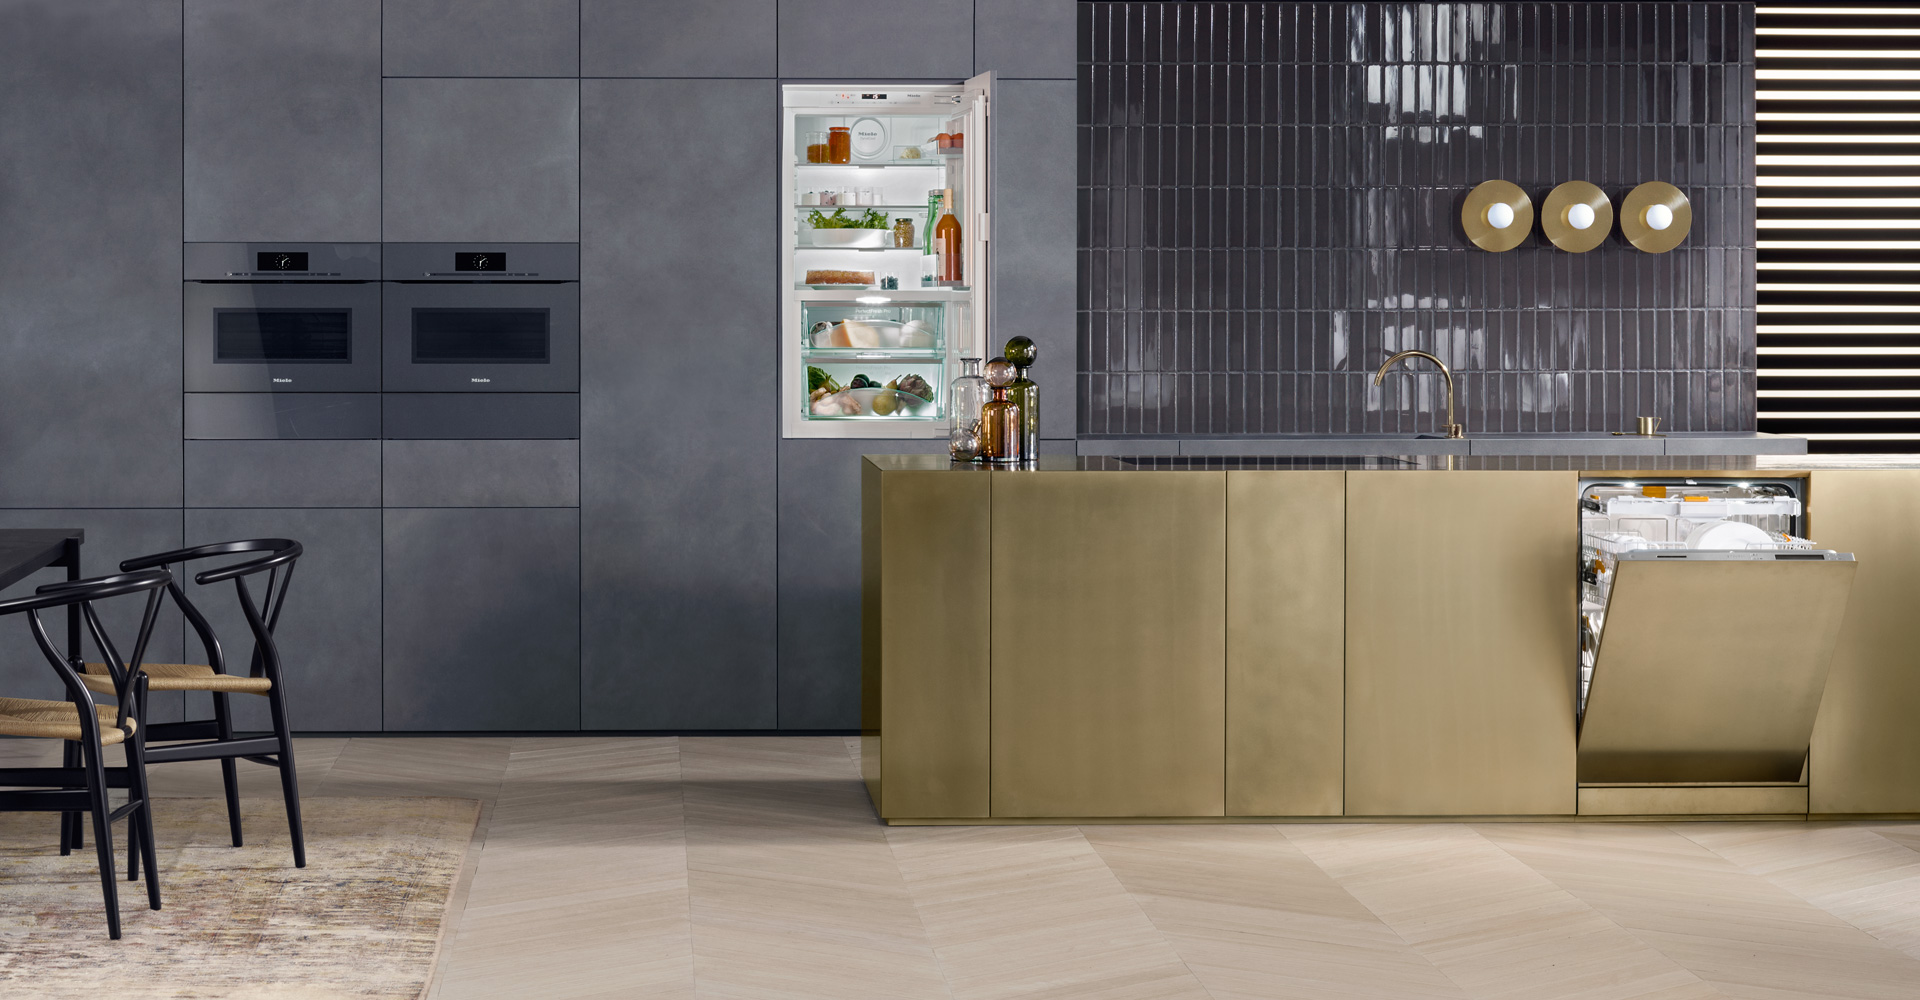 Uncategorized Intergrated Kitchen Appliances artline built in appliances with touch2open miele you can seamlessly integrate into the design of your elegant handleless kitchen perfect combination artline